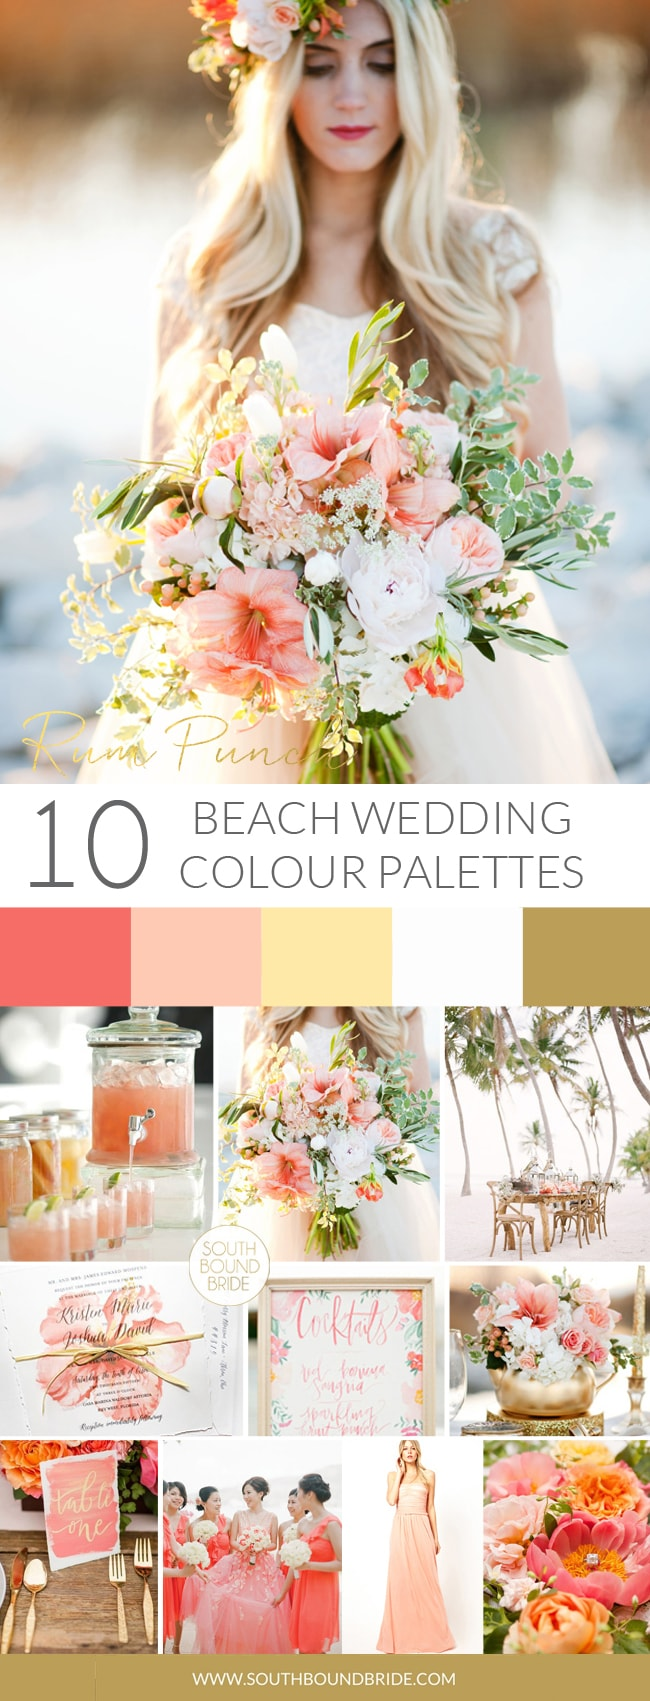 Rum Punch Beach Wedding Palette | SouthBound Bride